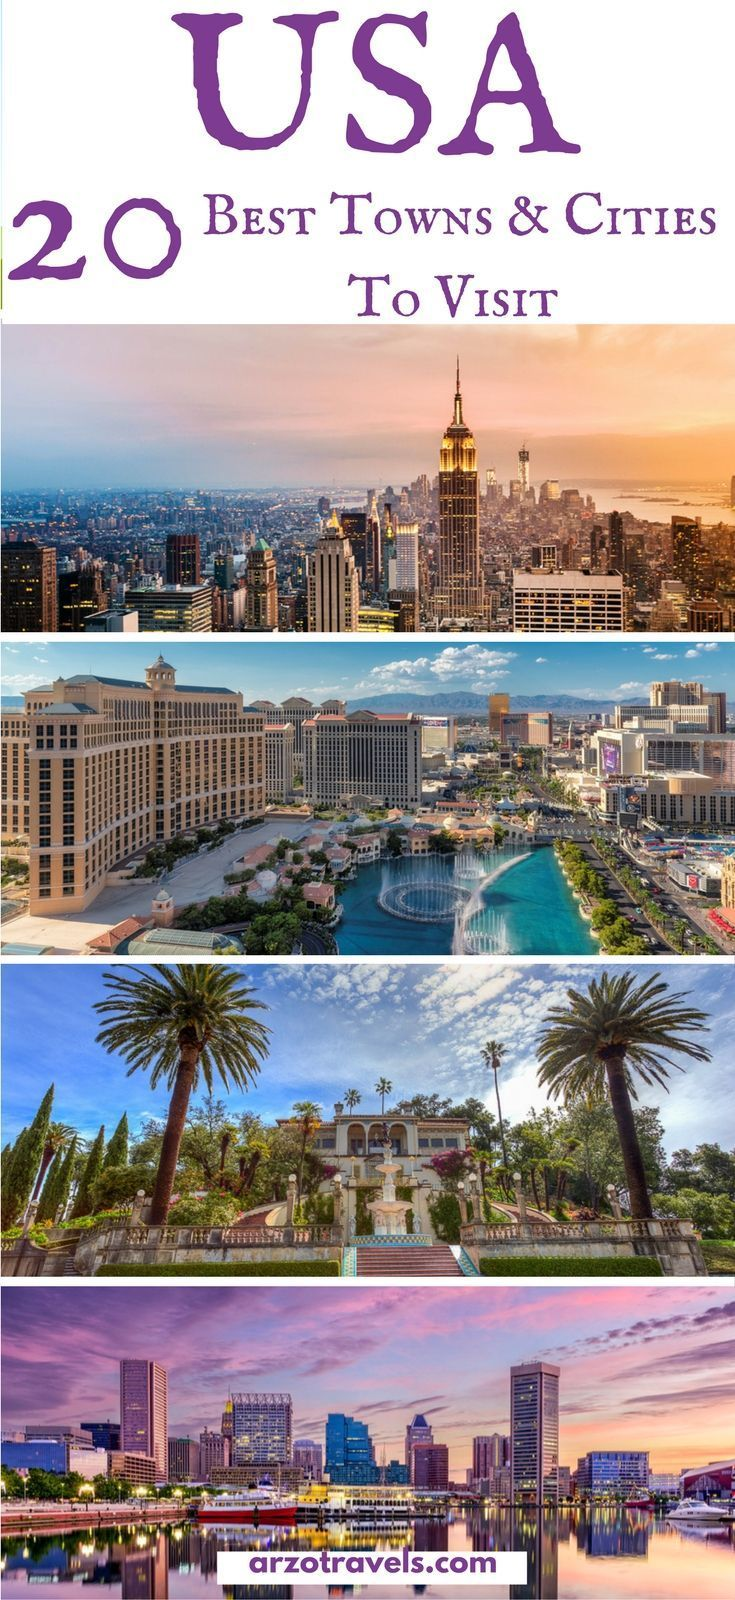 Best Places To Visit In The Usa Best Towns And Cities To Visit In The Us Travel Destinations Usa Cities Cool Places To Visit Usa Travel Destinations